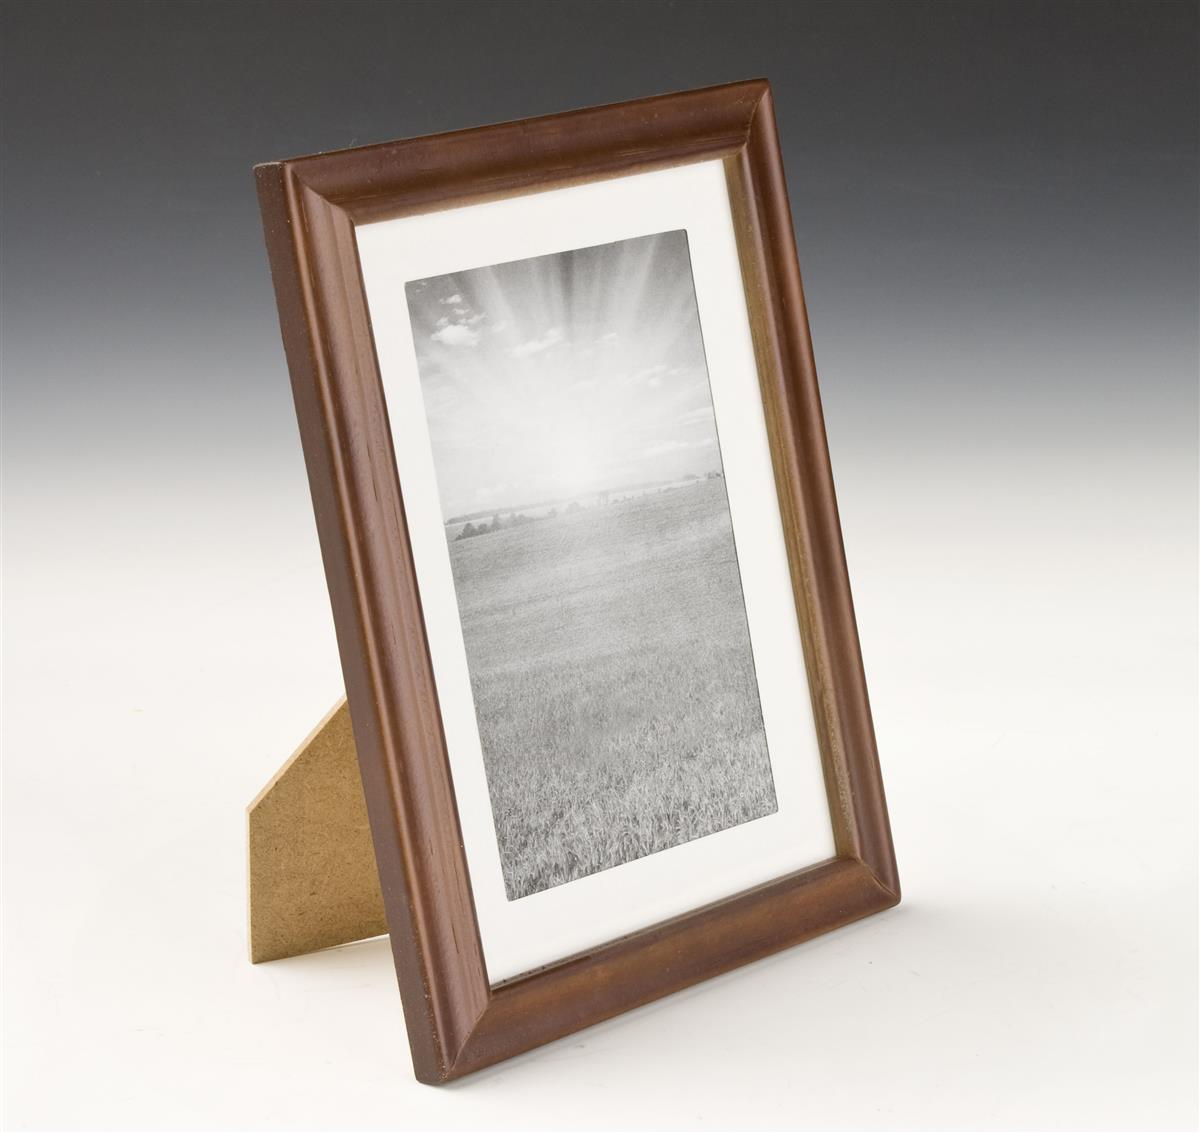 5 x 7 Wooden Picture Frames w/ Walnut Finish & White Mat